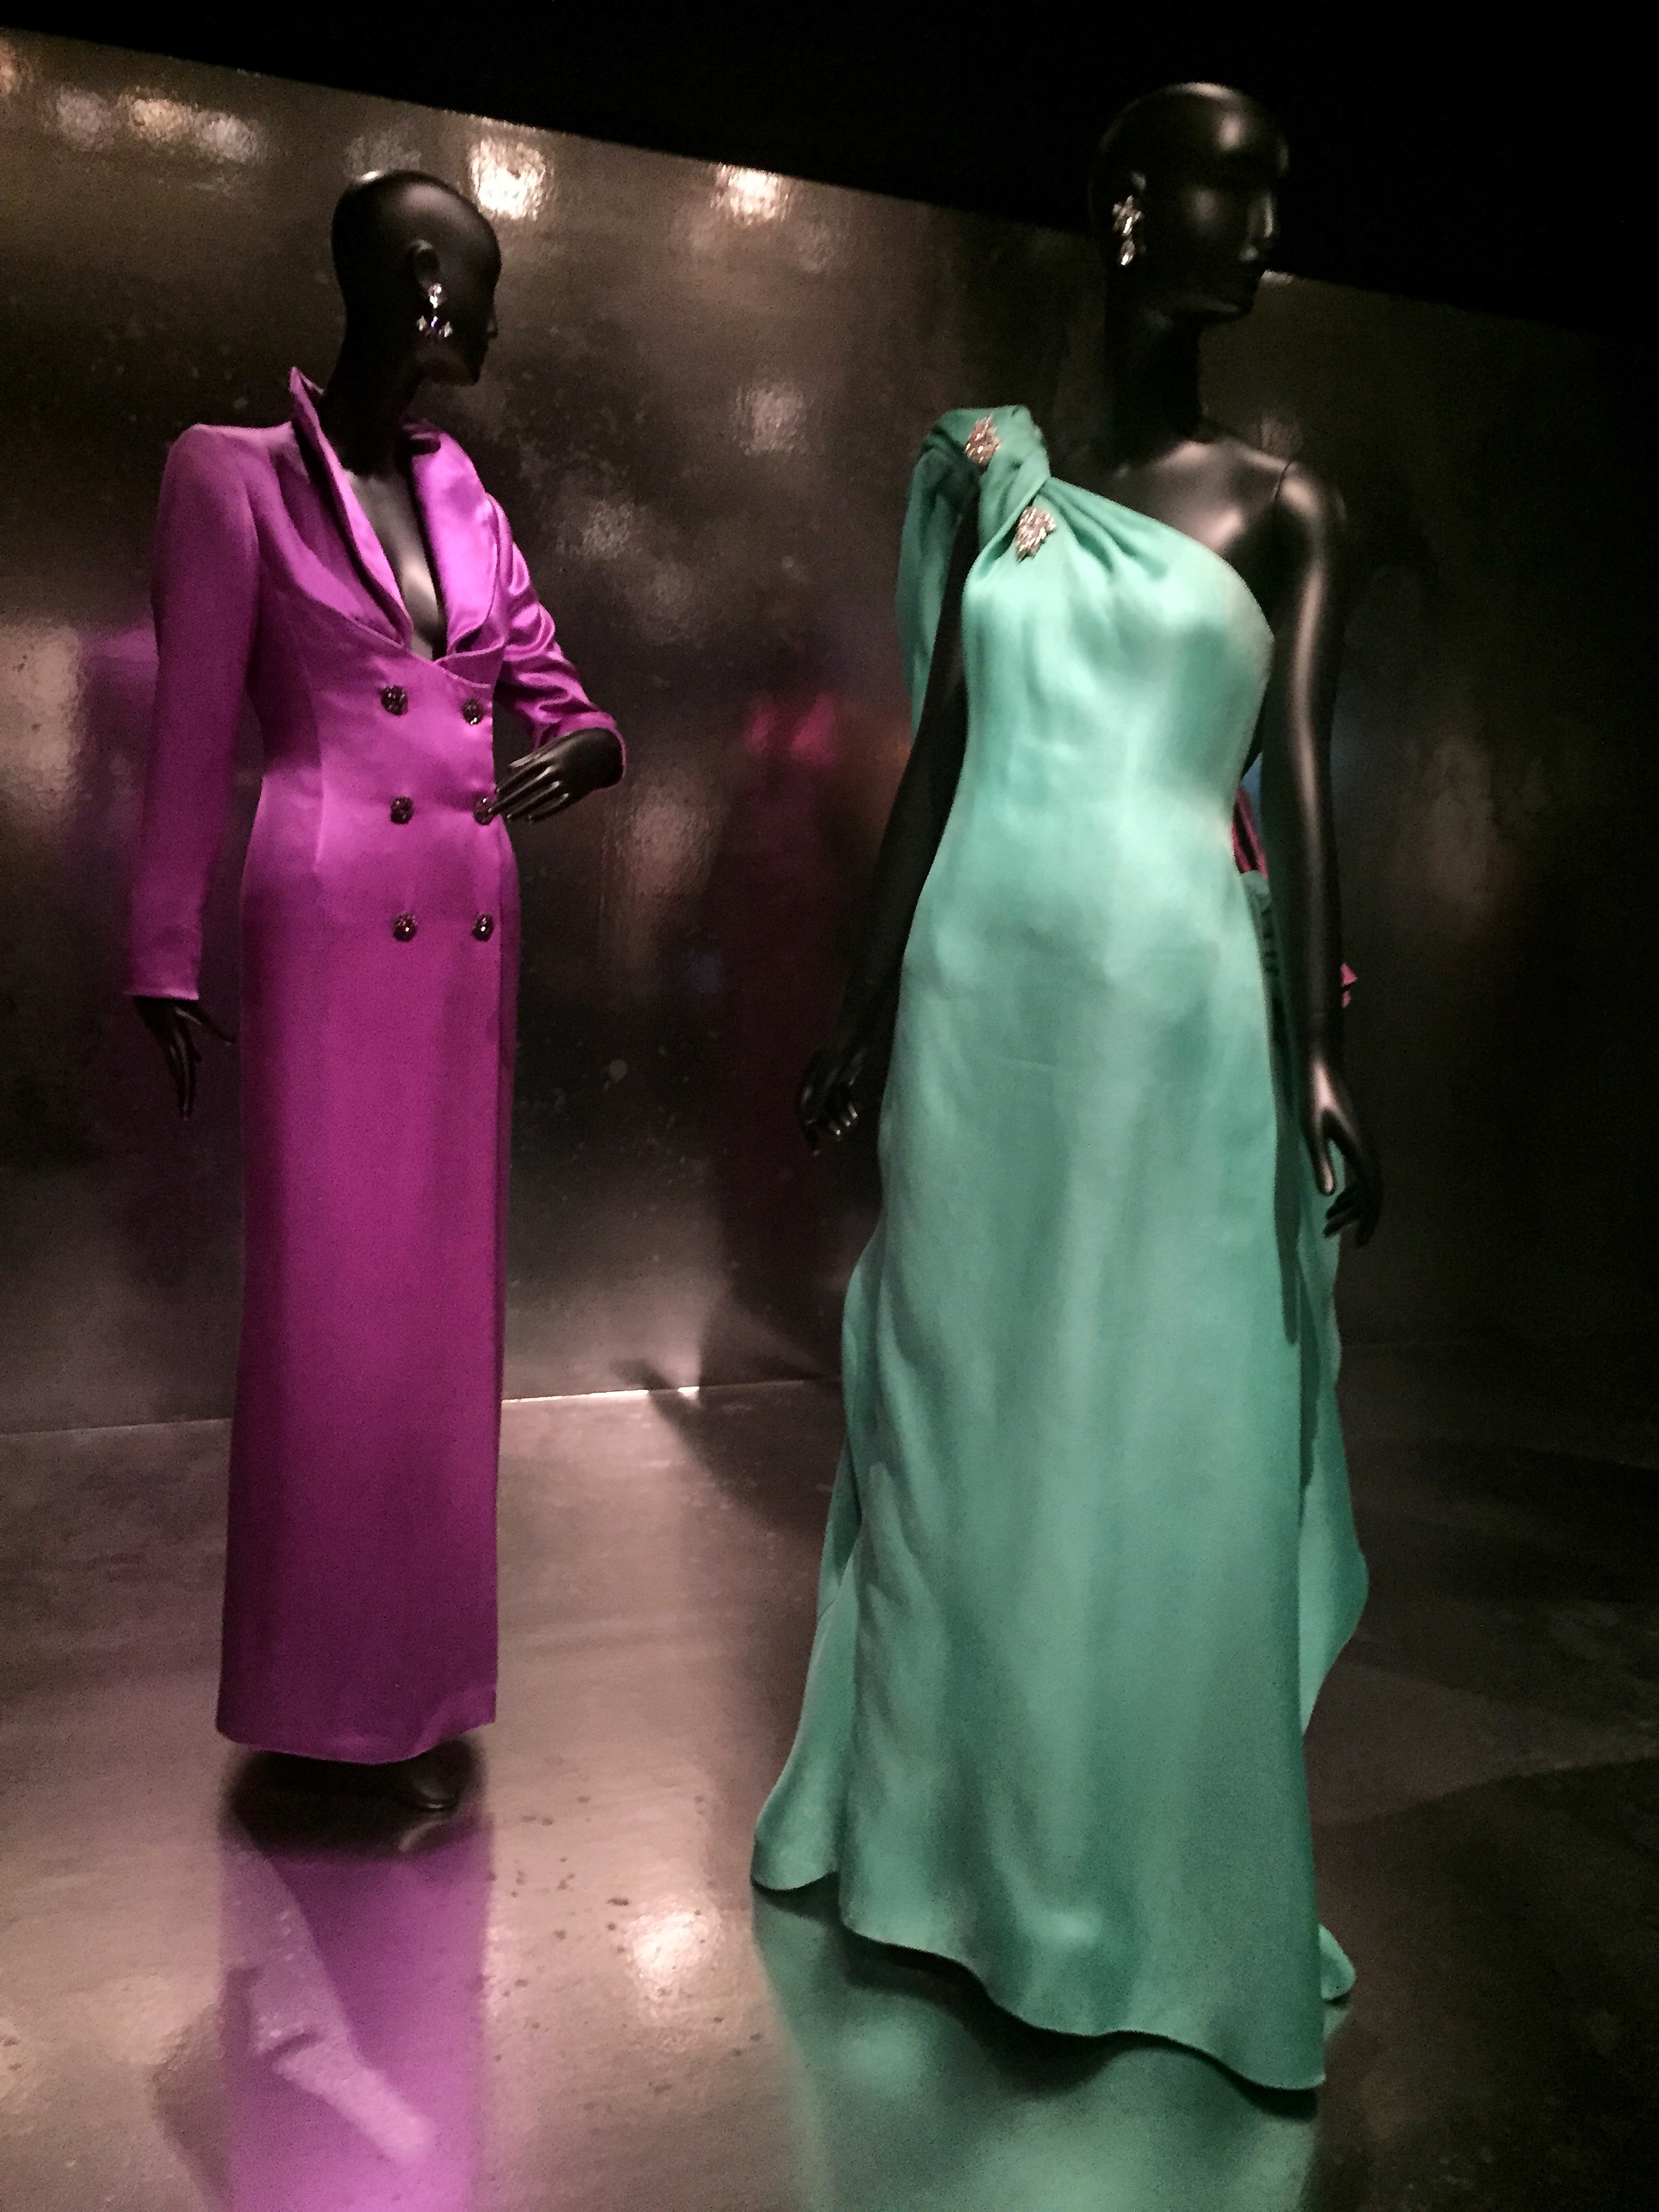 Exquisite colors for evening wear.